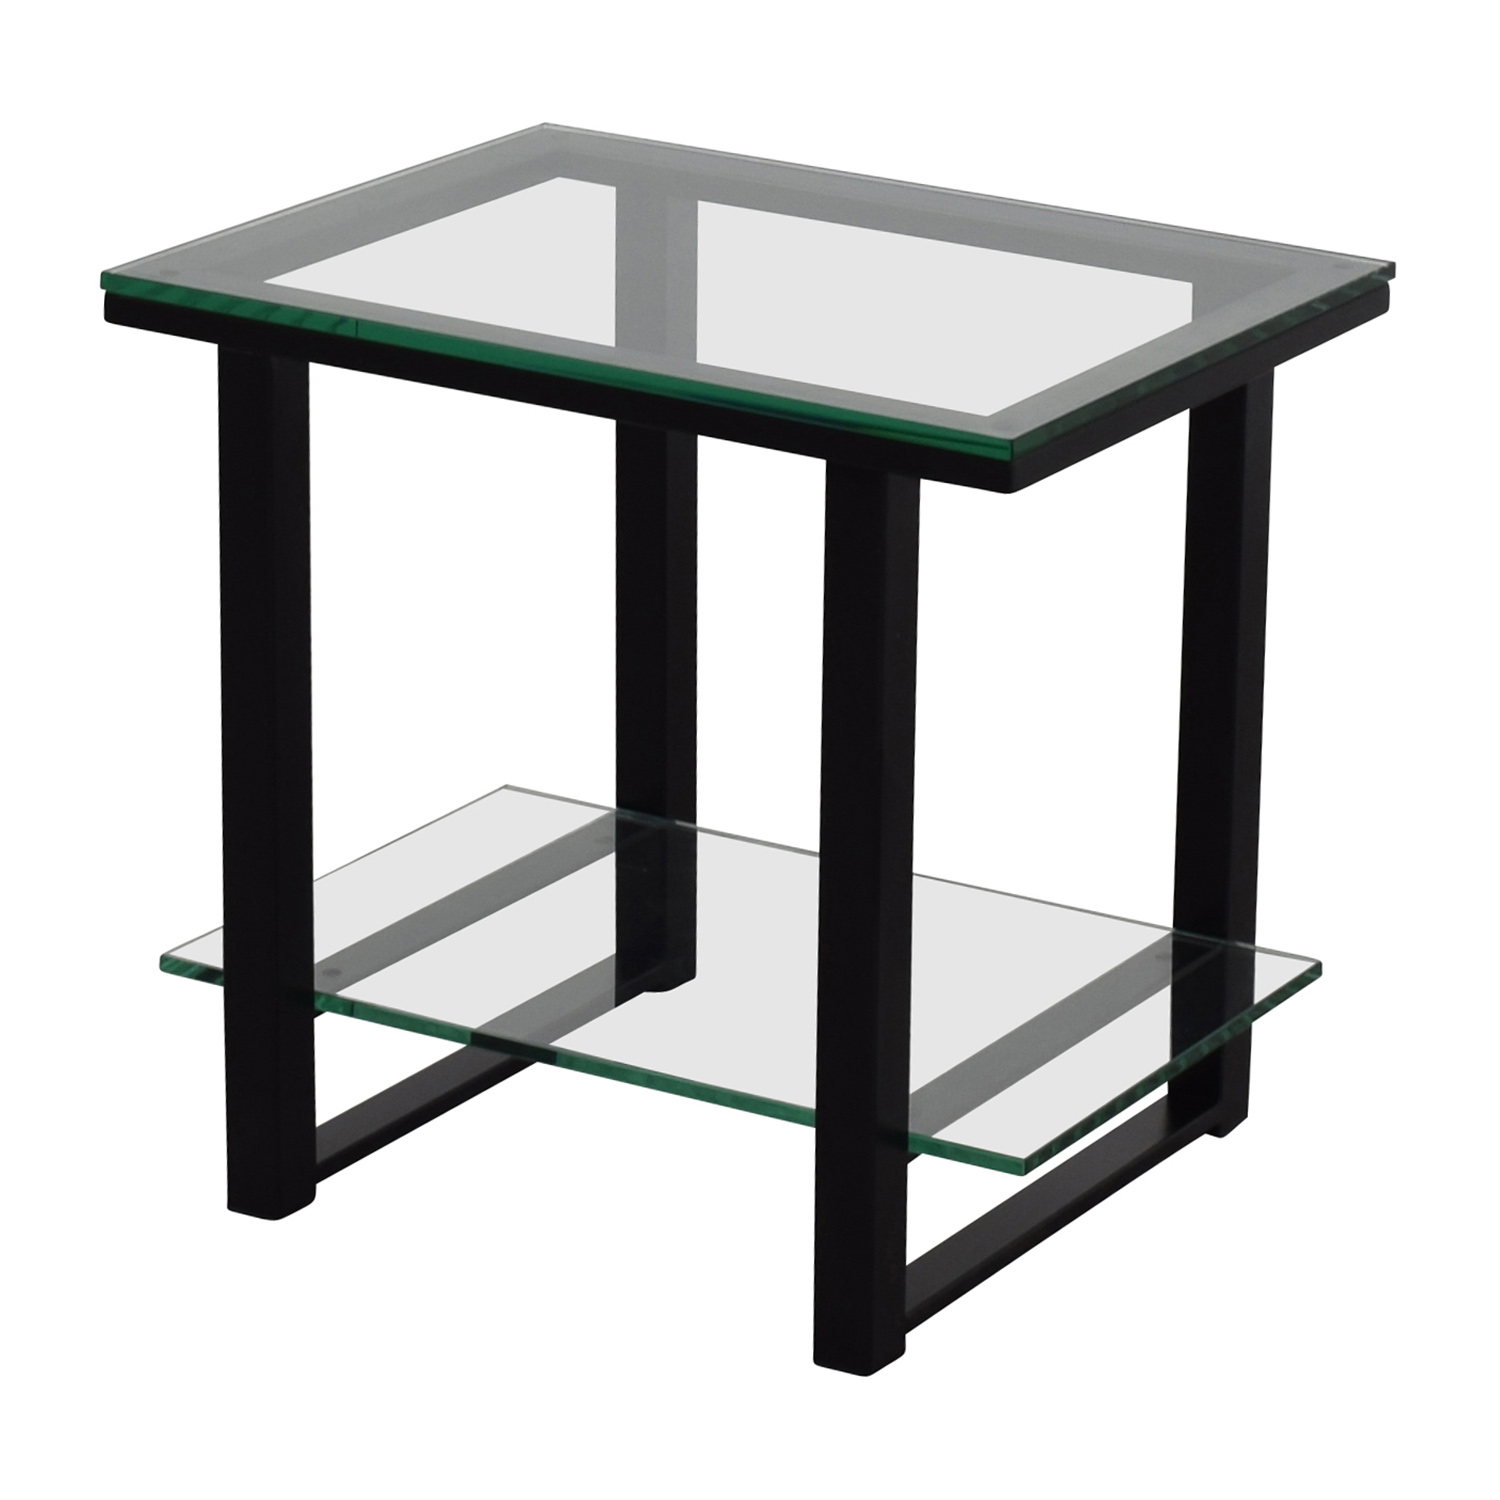 Crate & BarrelGlass and Metal Two -Shelf Side Table / Accent Tables